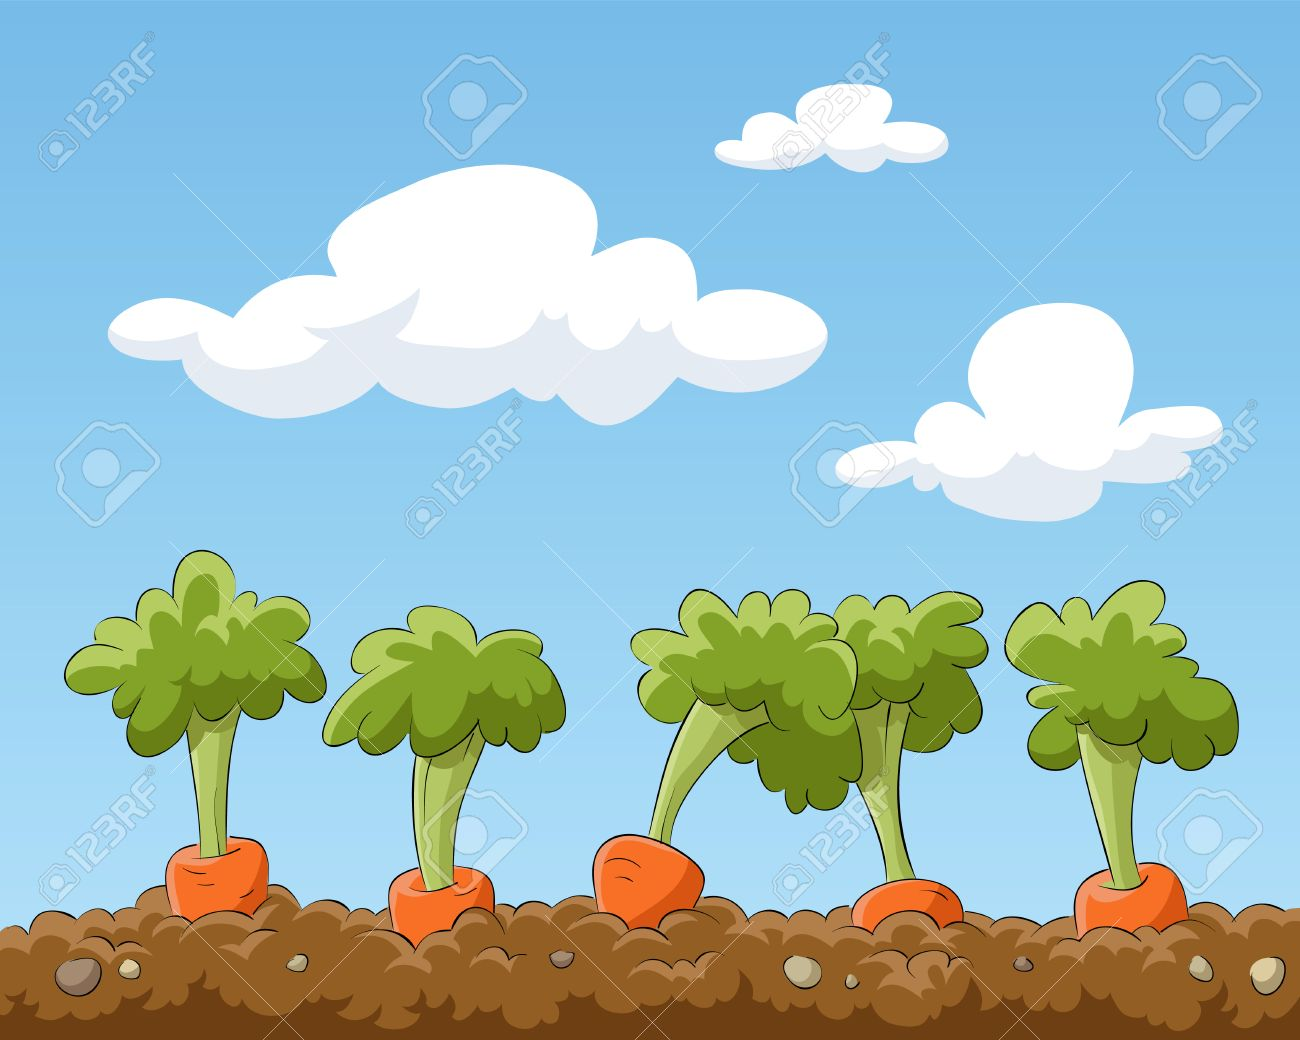 Vegetable garden cartoon - Vegetable Garden Cartoon Garden Bed With Carrots Illustration